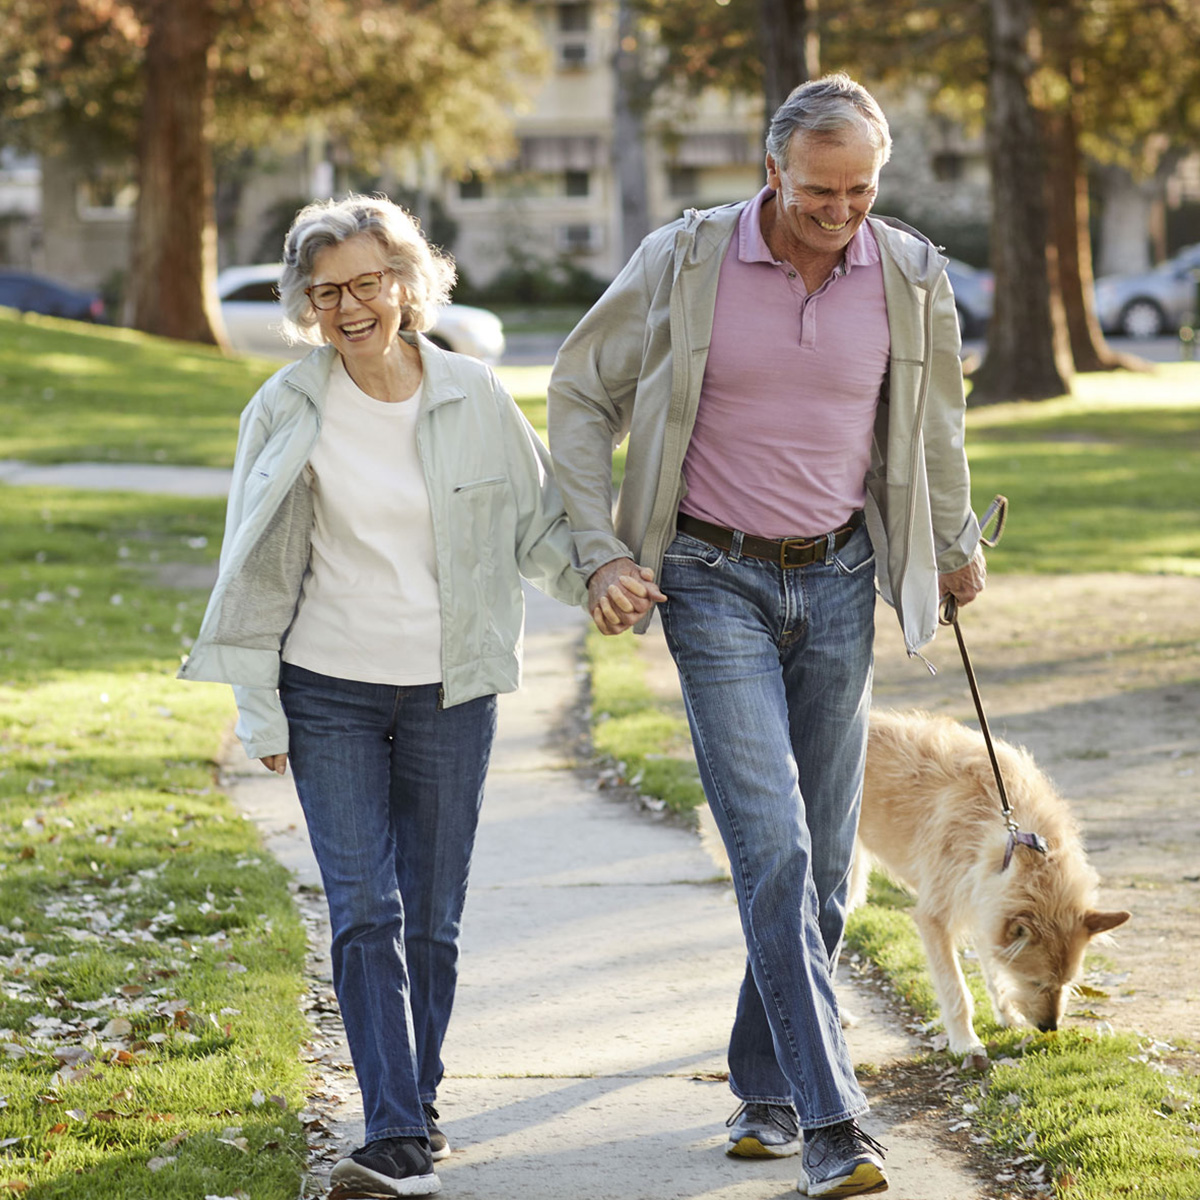 Smiling couple holding hands and walking their dog on a sunny day.